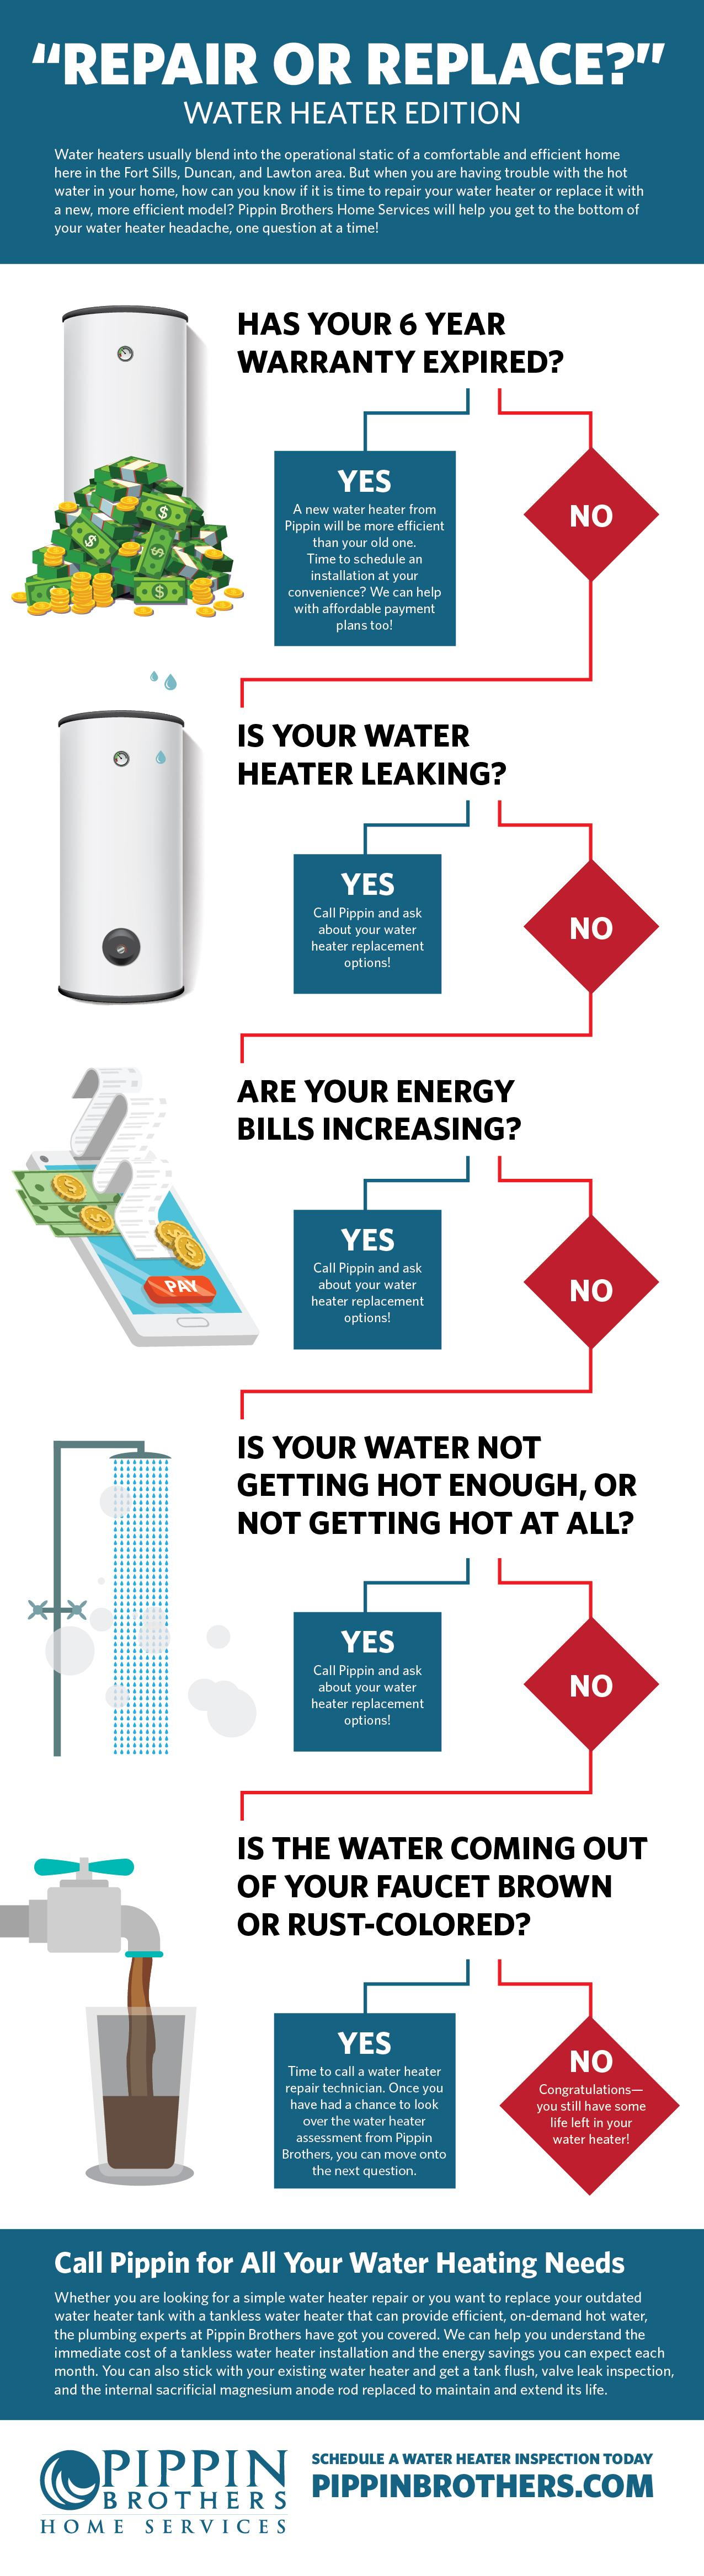 pippin brothers water heater repair or replace flow chart